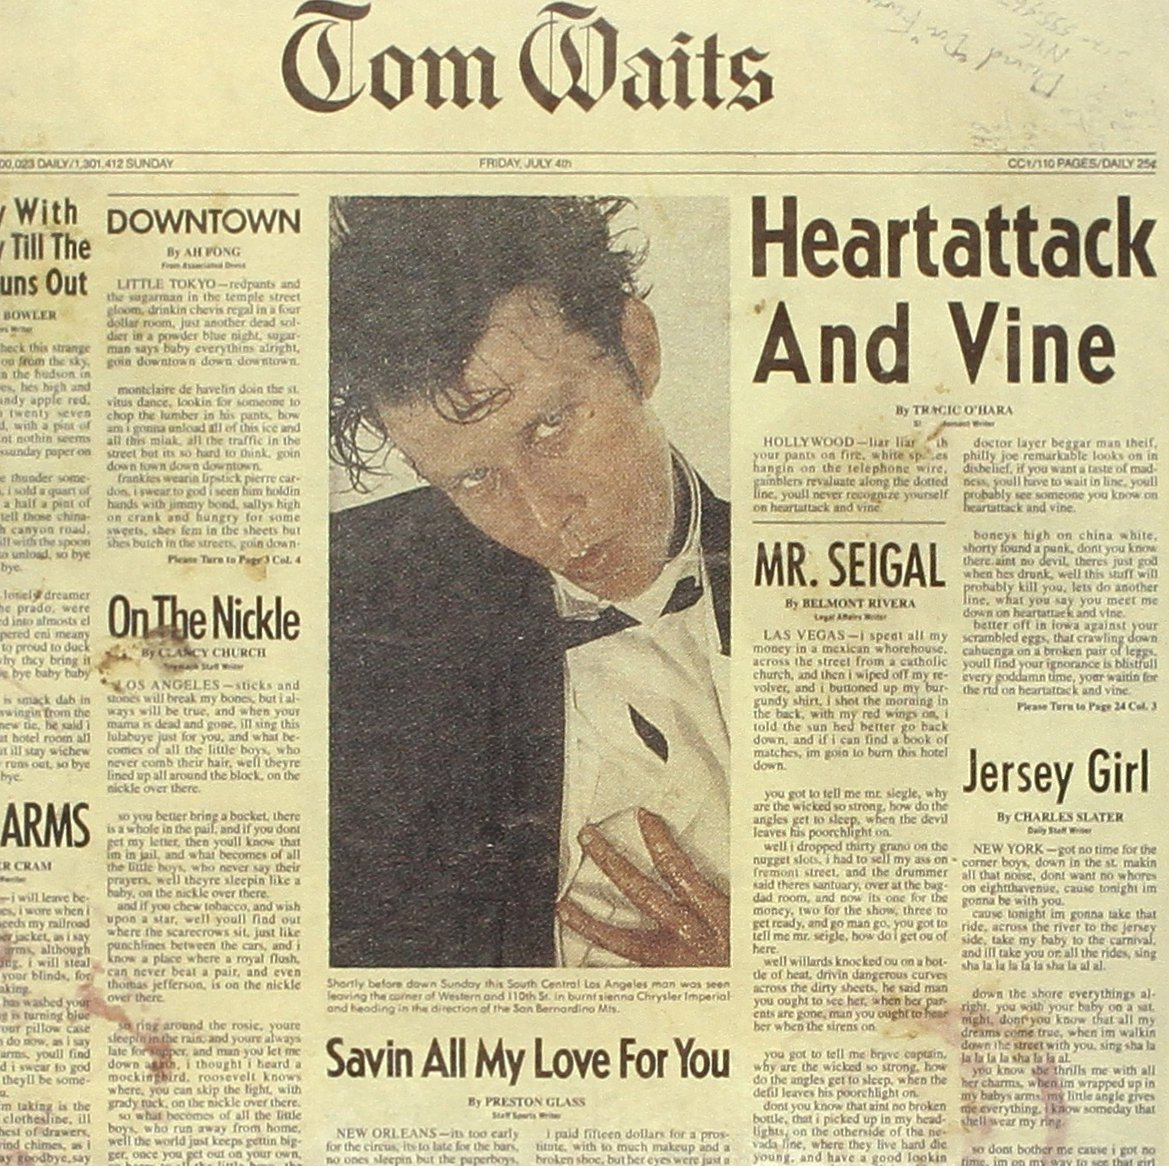 TOM WAITS HEARTATTACK